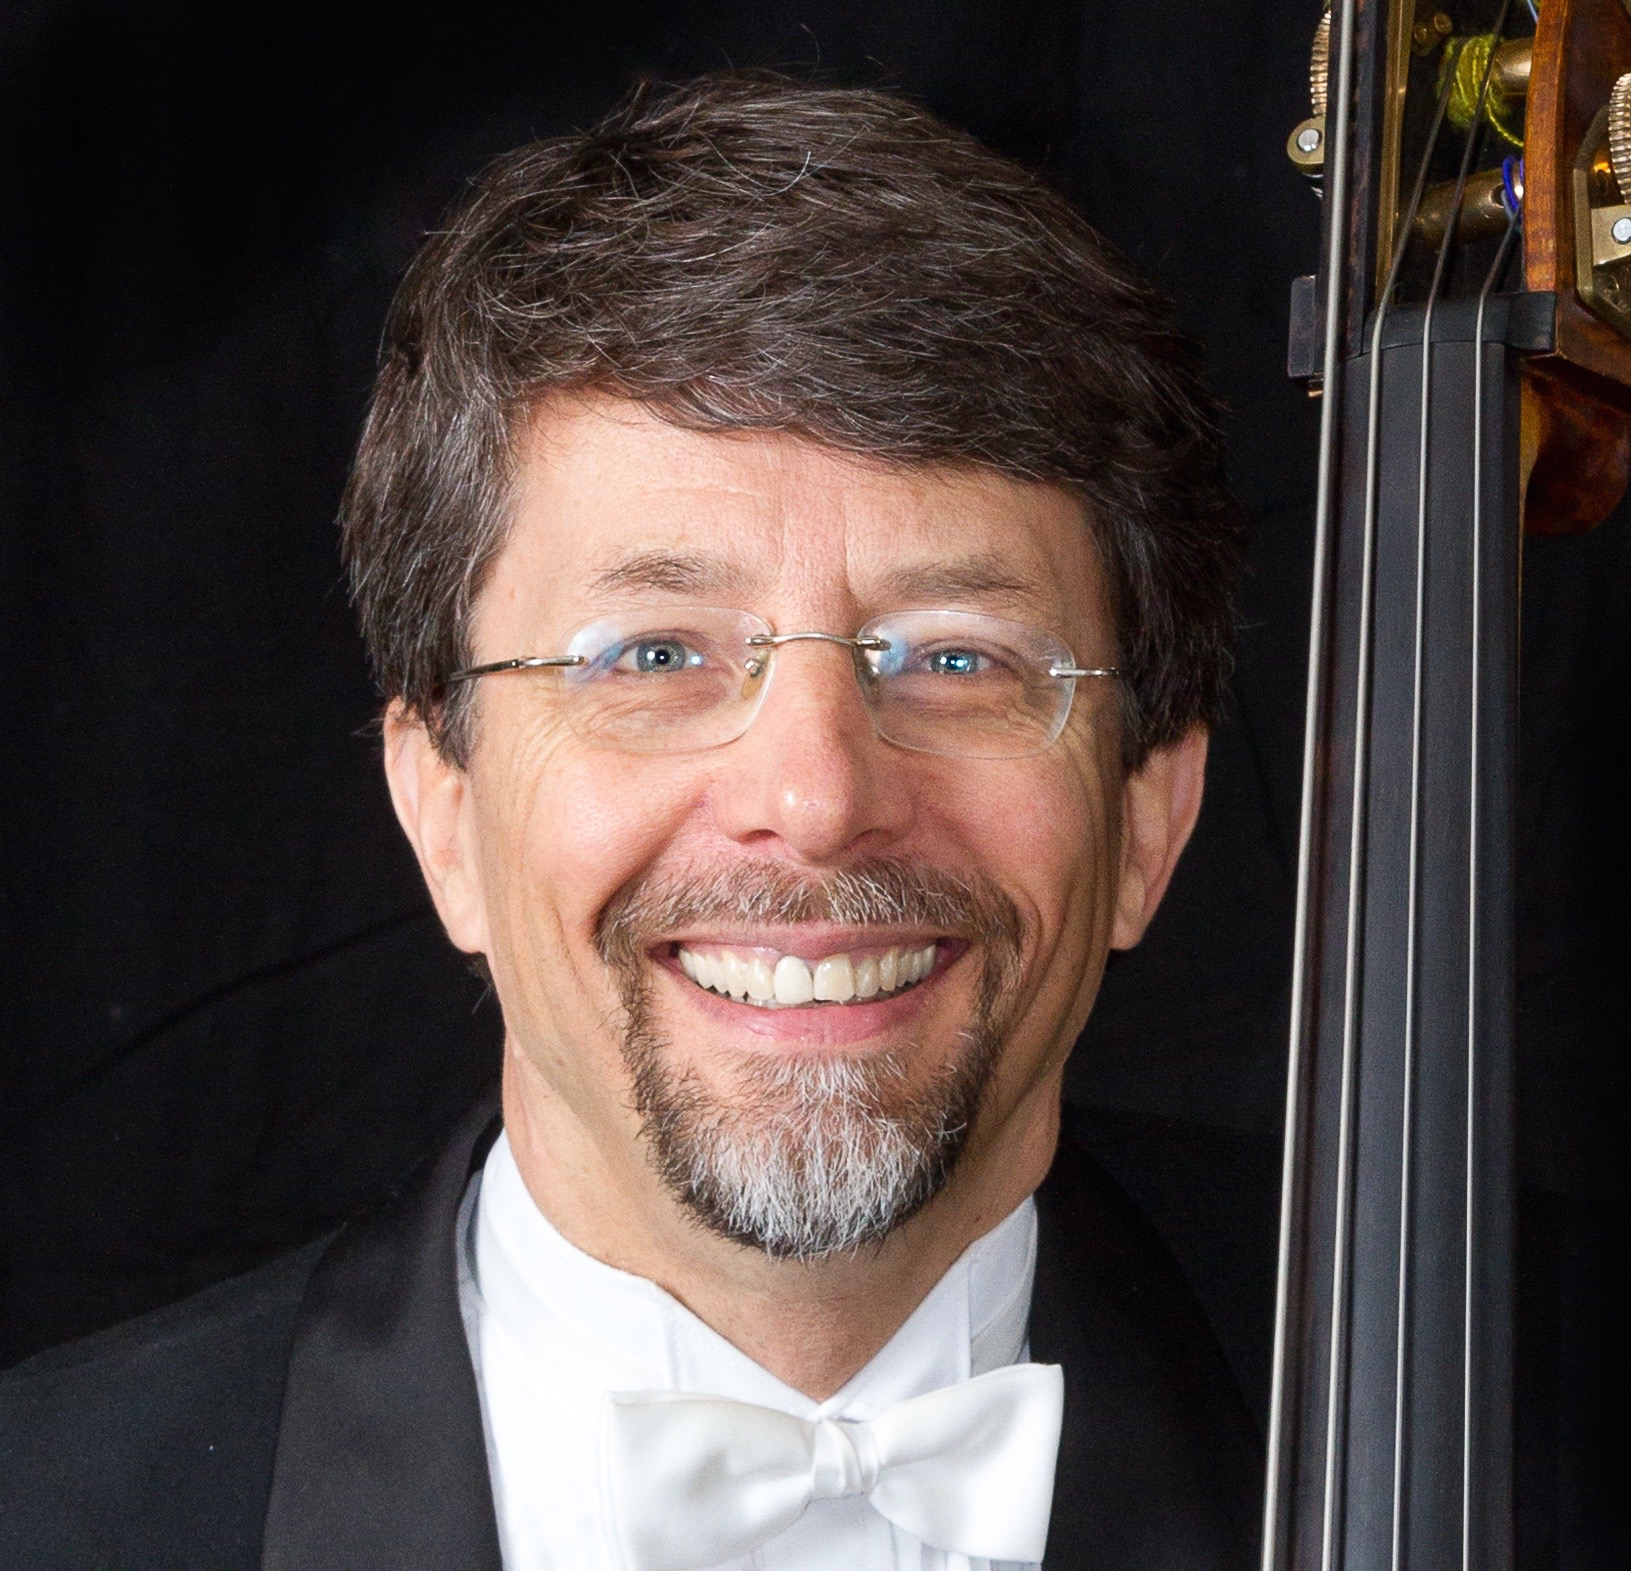 Regents Professor or Double Bass Jeff Bradetich is celebrating milestones with a Carnegie Hall concert.